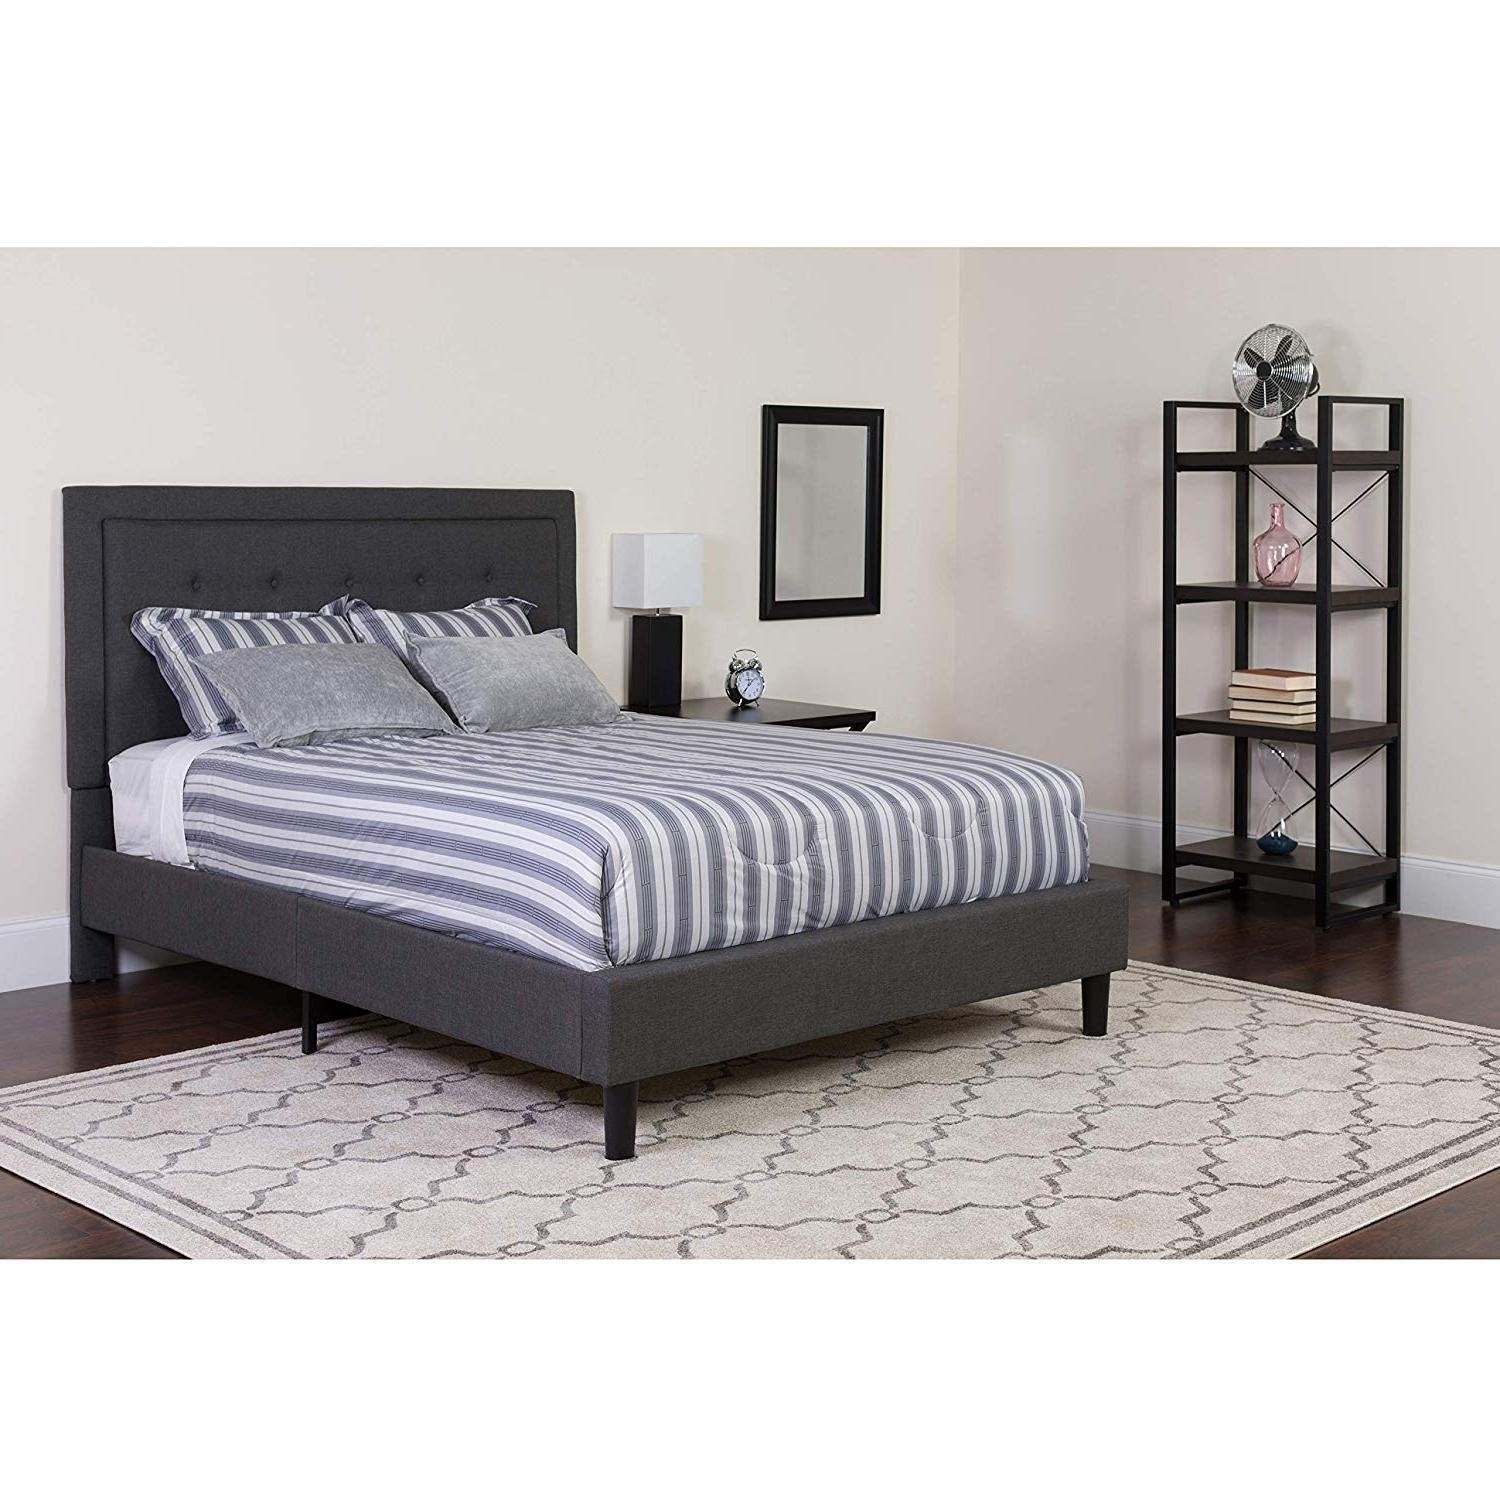 Tudor Platform Bed Queen size